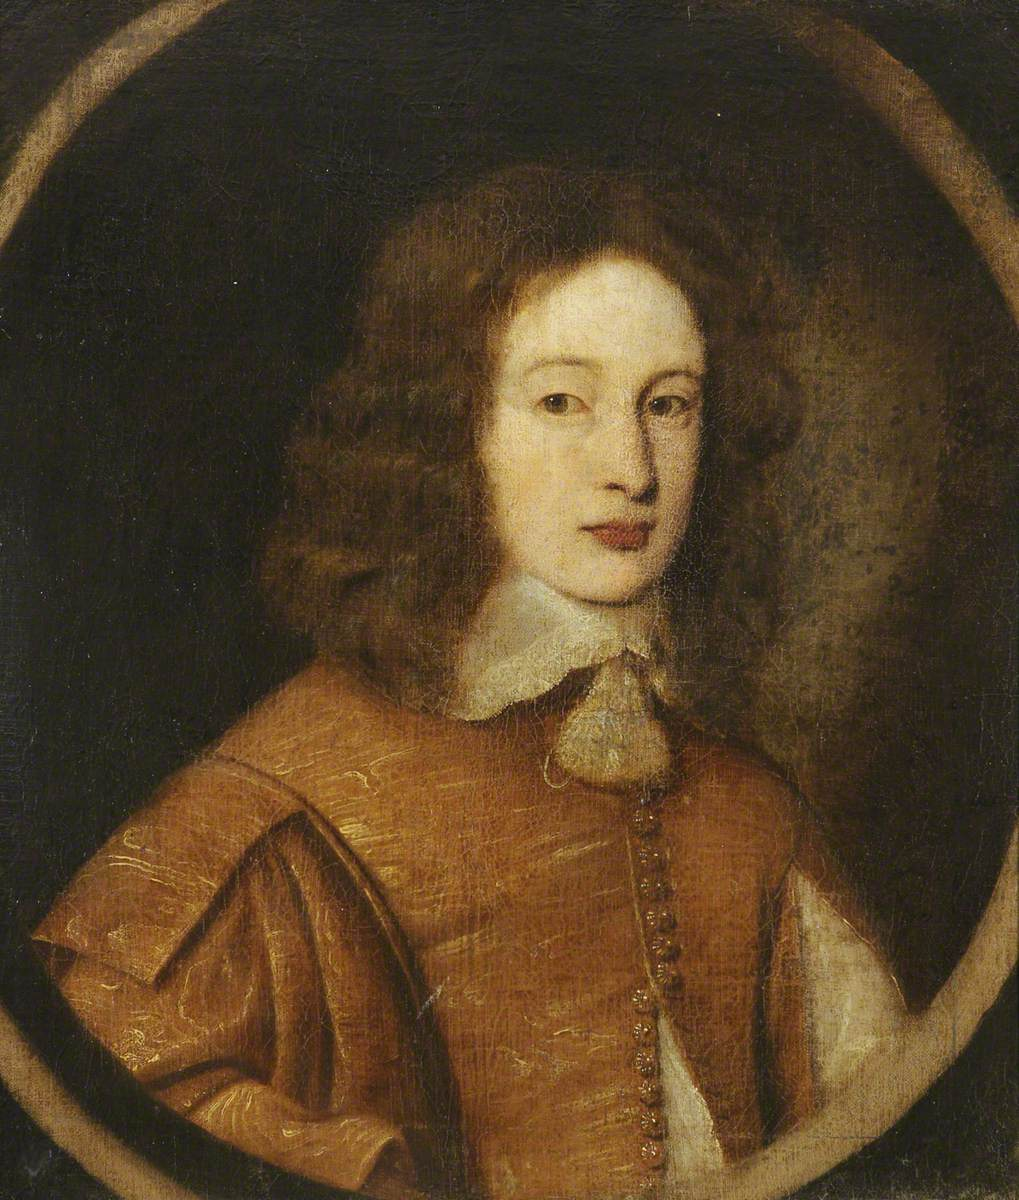 Thomas Whitgreave (1618–after 1691), Aged 23